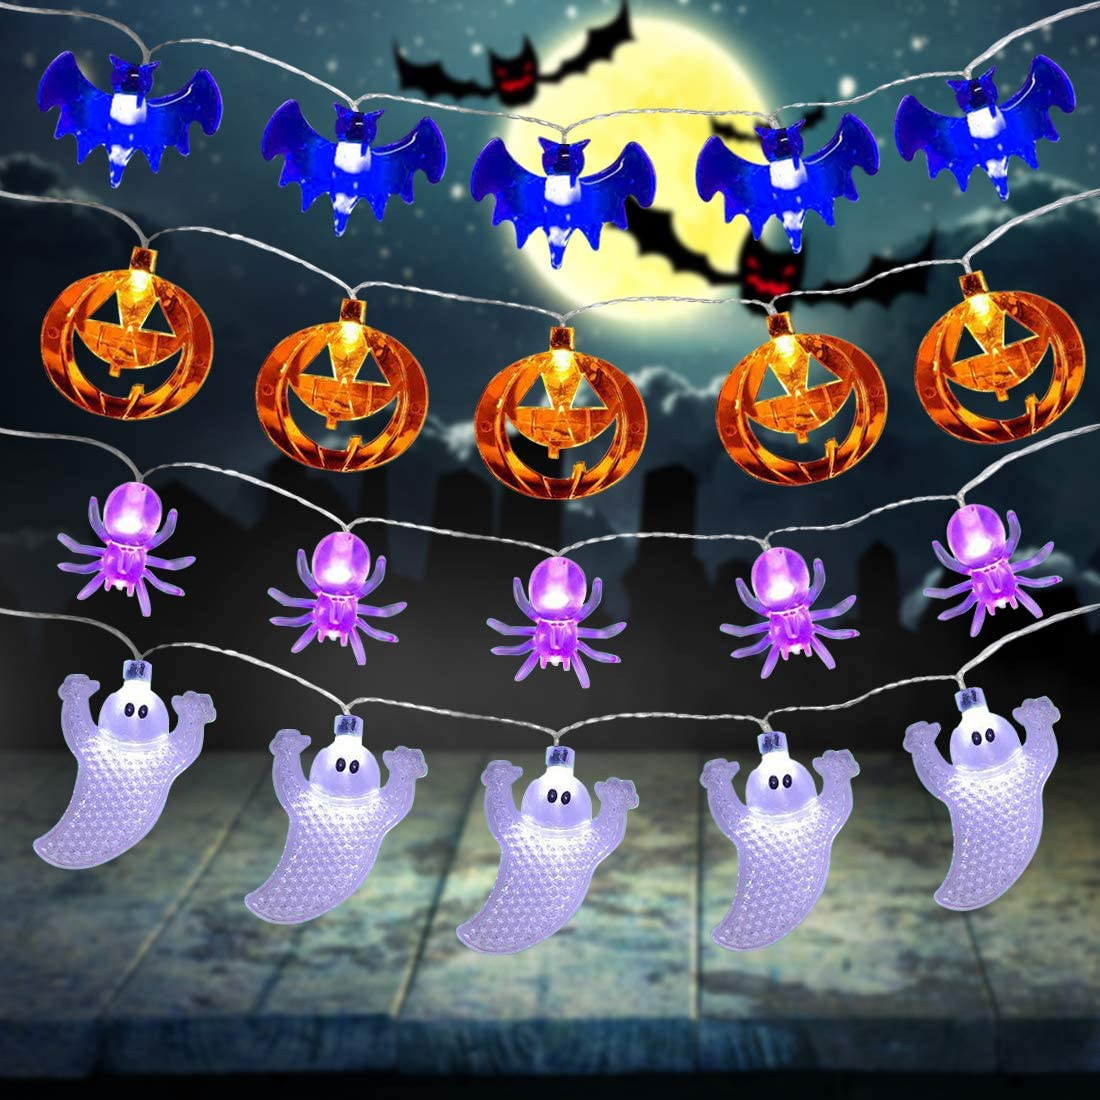 Diamerd 4 Pack Halloween Decoration Lights Halloween String Lights, Battery Operated Fairy Lights 10Ft Pumpkin Bat Ghost Twinkle String Lights for Indoor Outdoor Patio Garden Home Yard Decoration